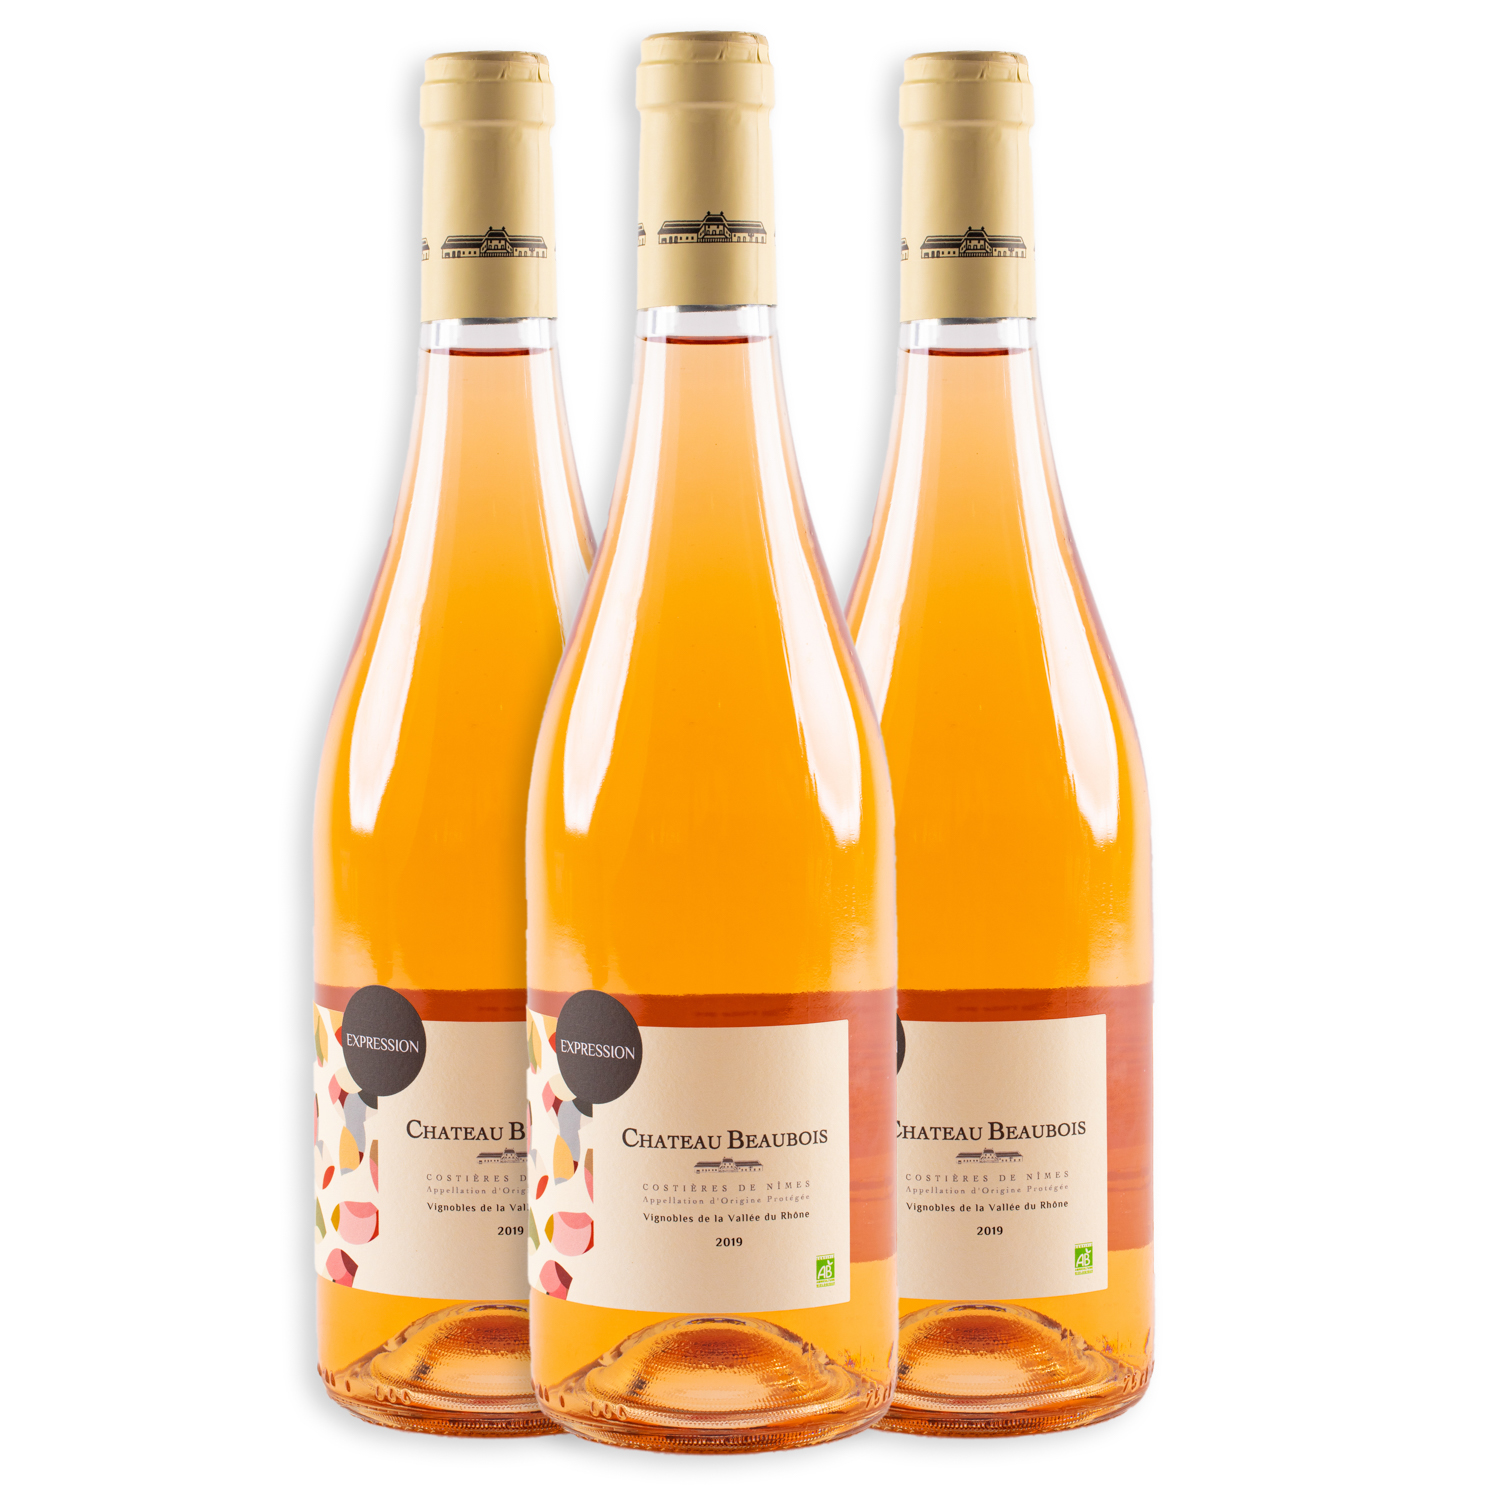 3 sticle x Chateau Beaubois Expression Rose 2019 750ml